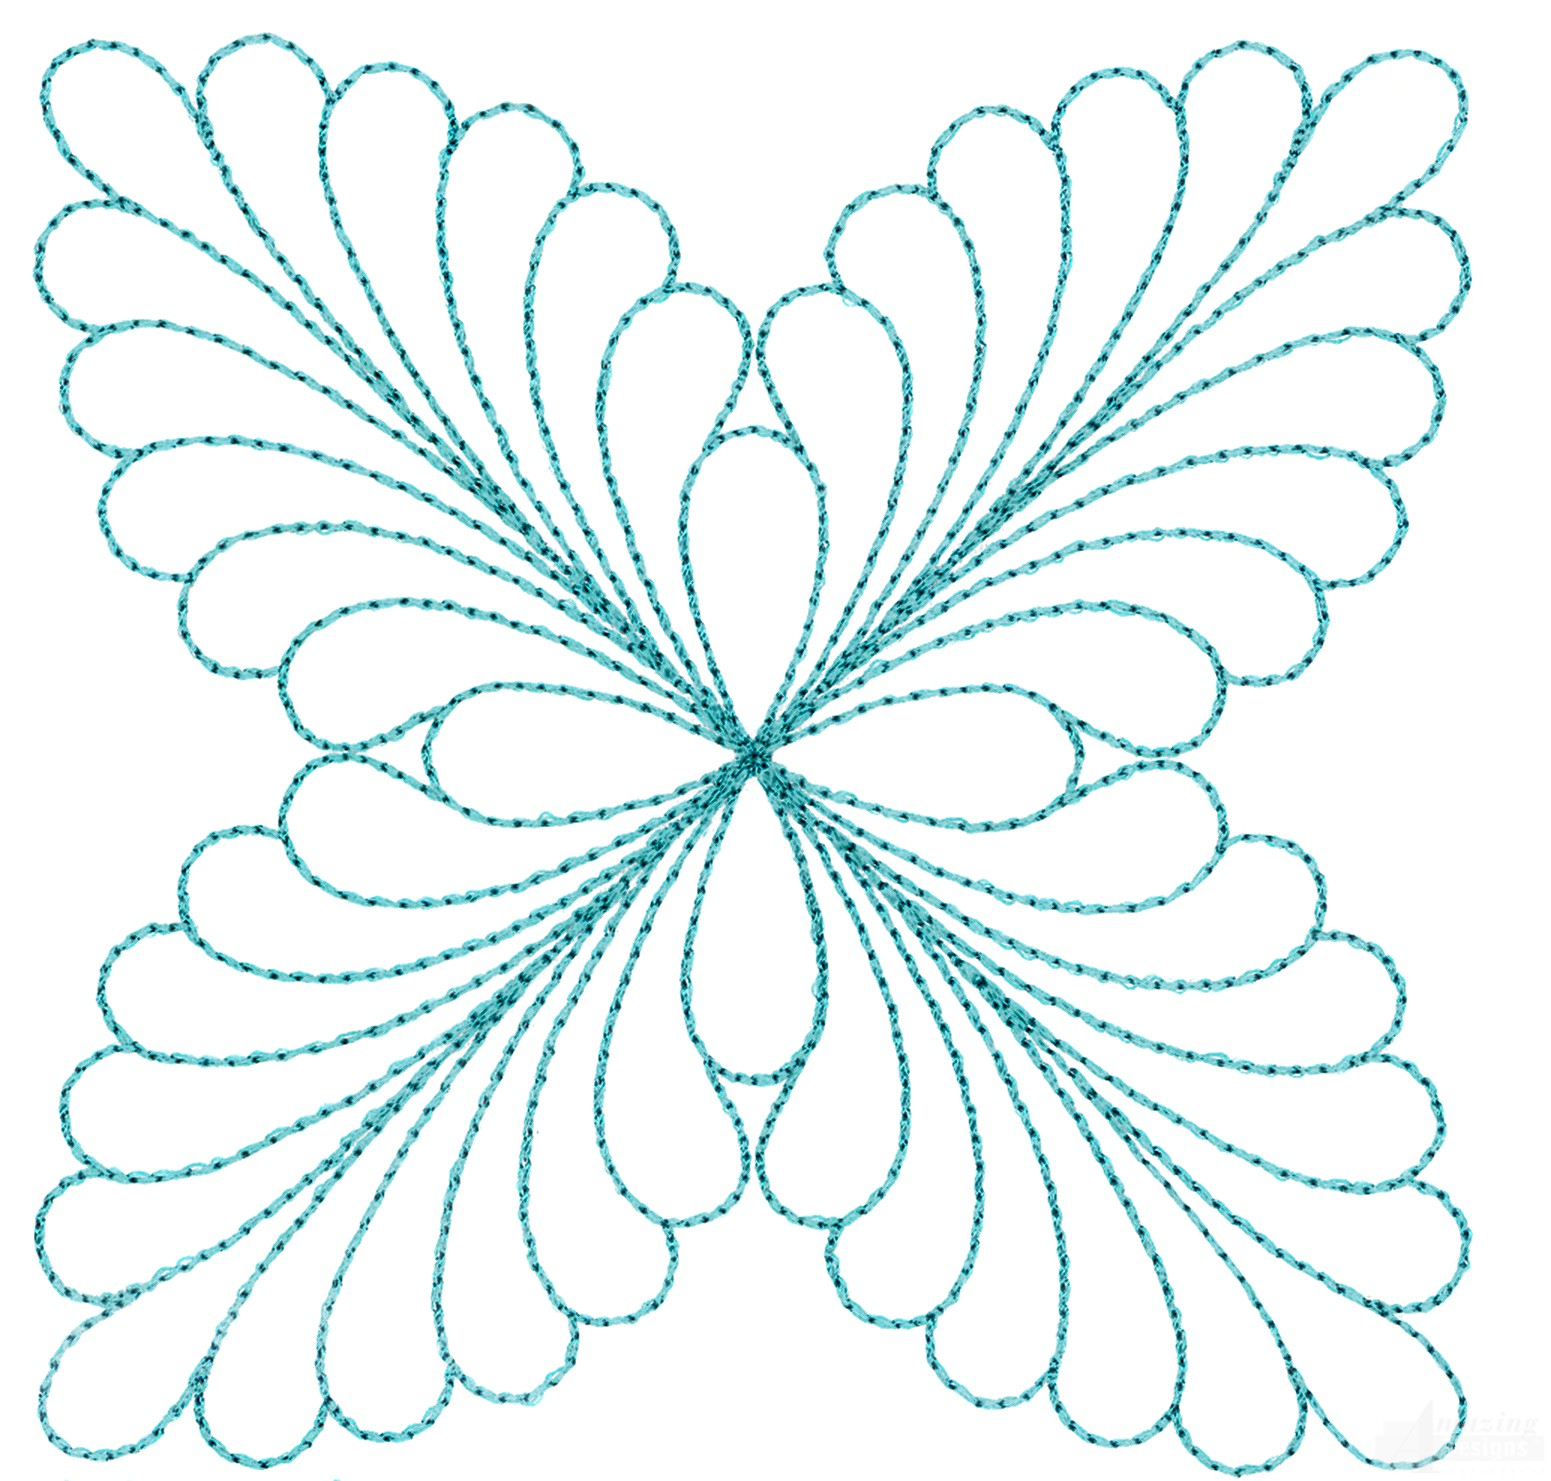 Quilt patterns v embroidery design collection